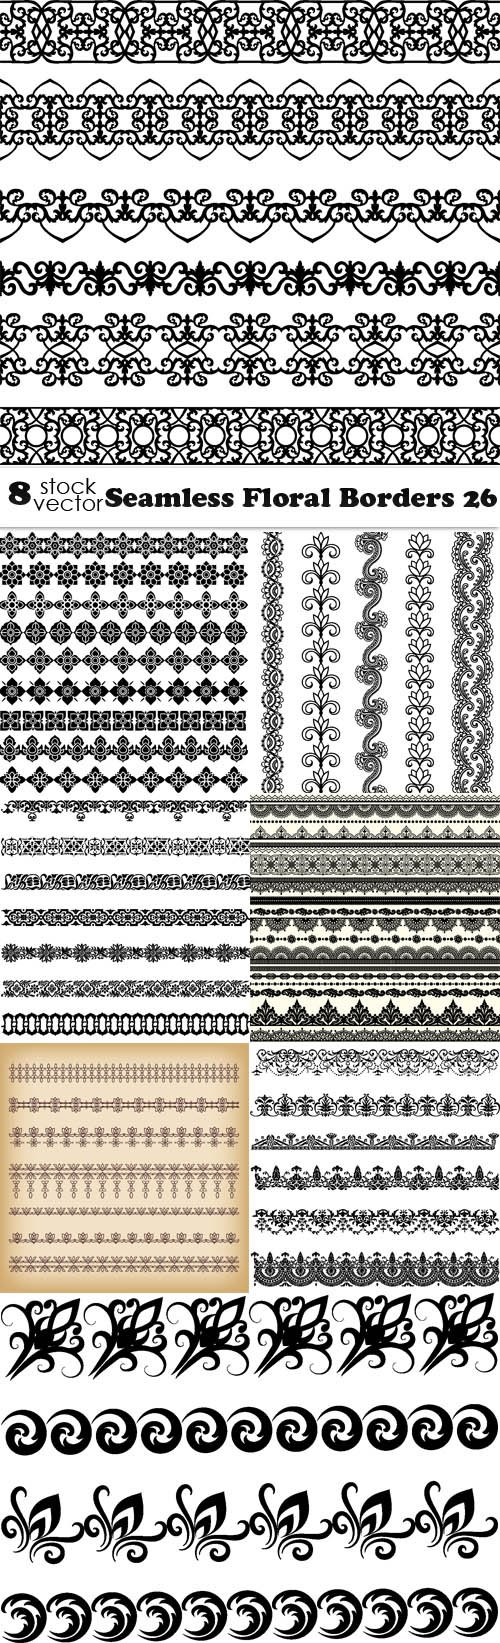 Vectors - Seamless Floral Borders 26